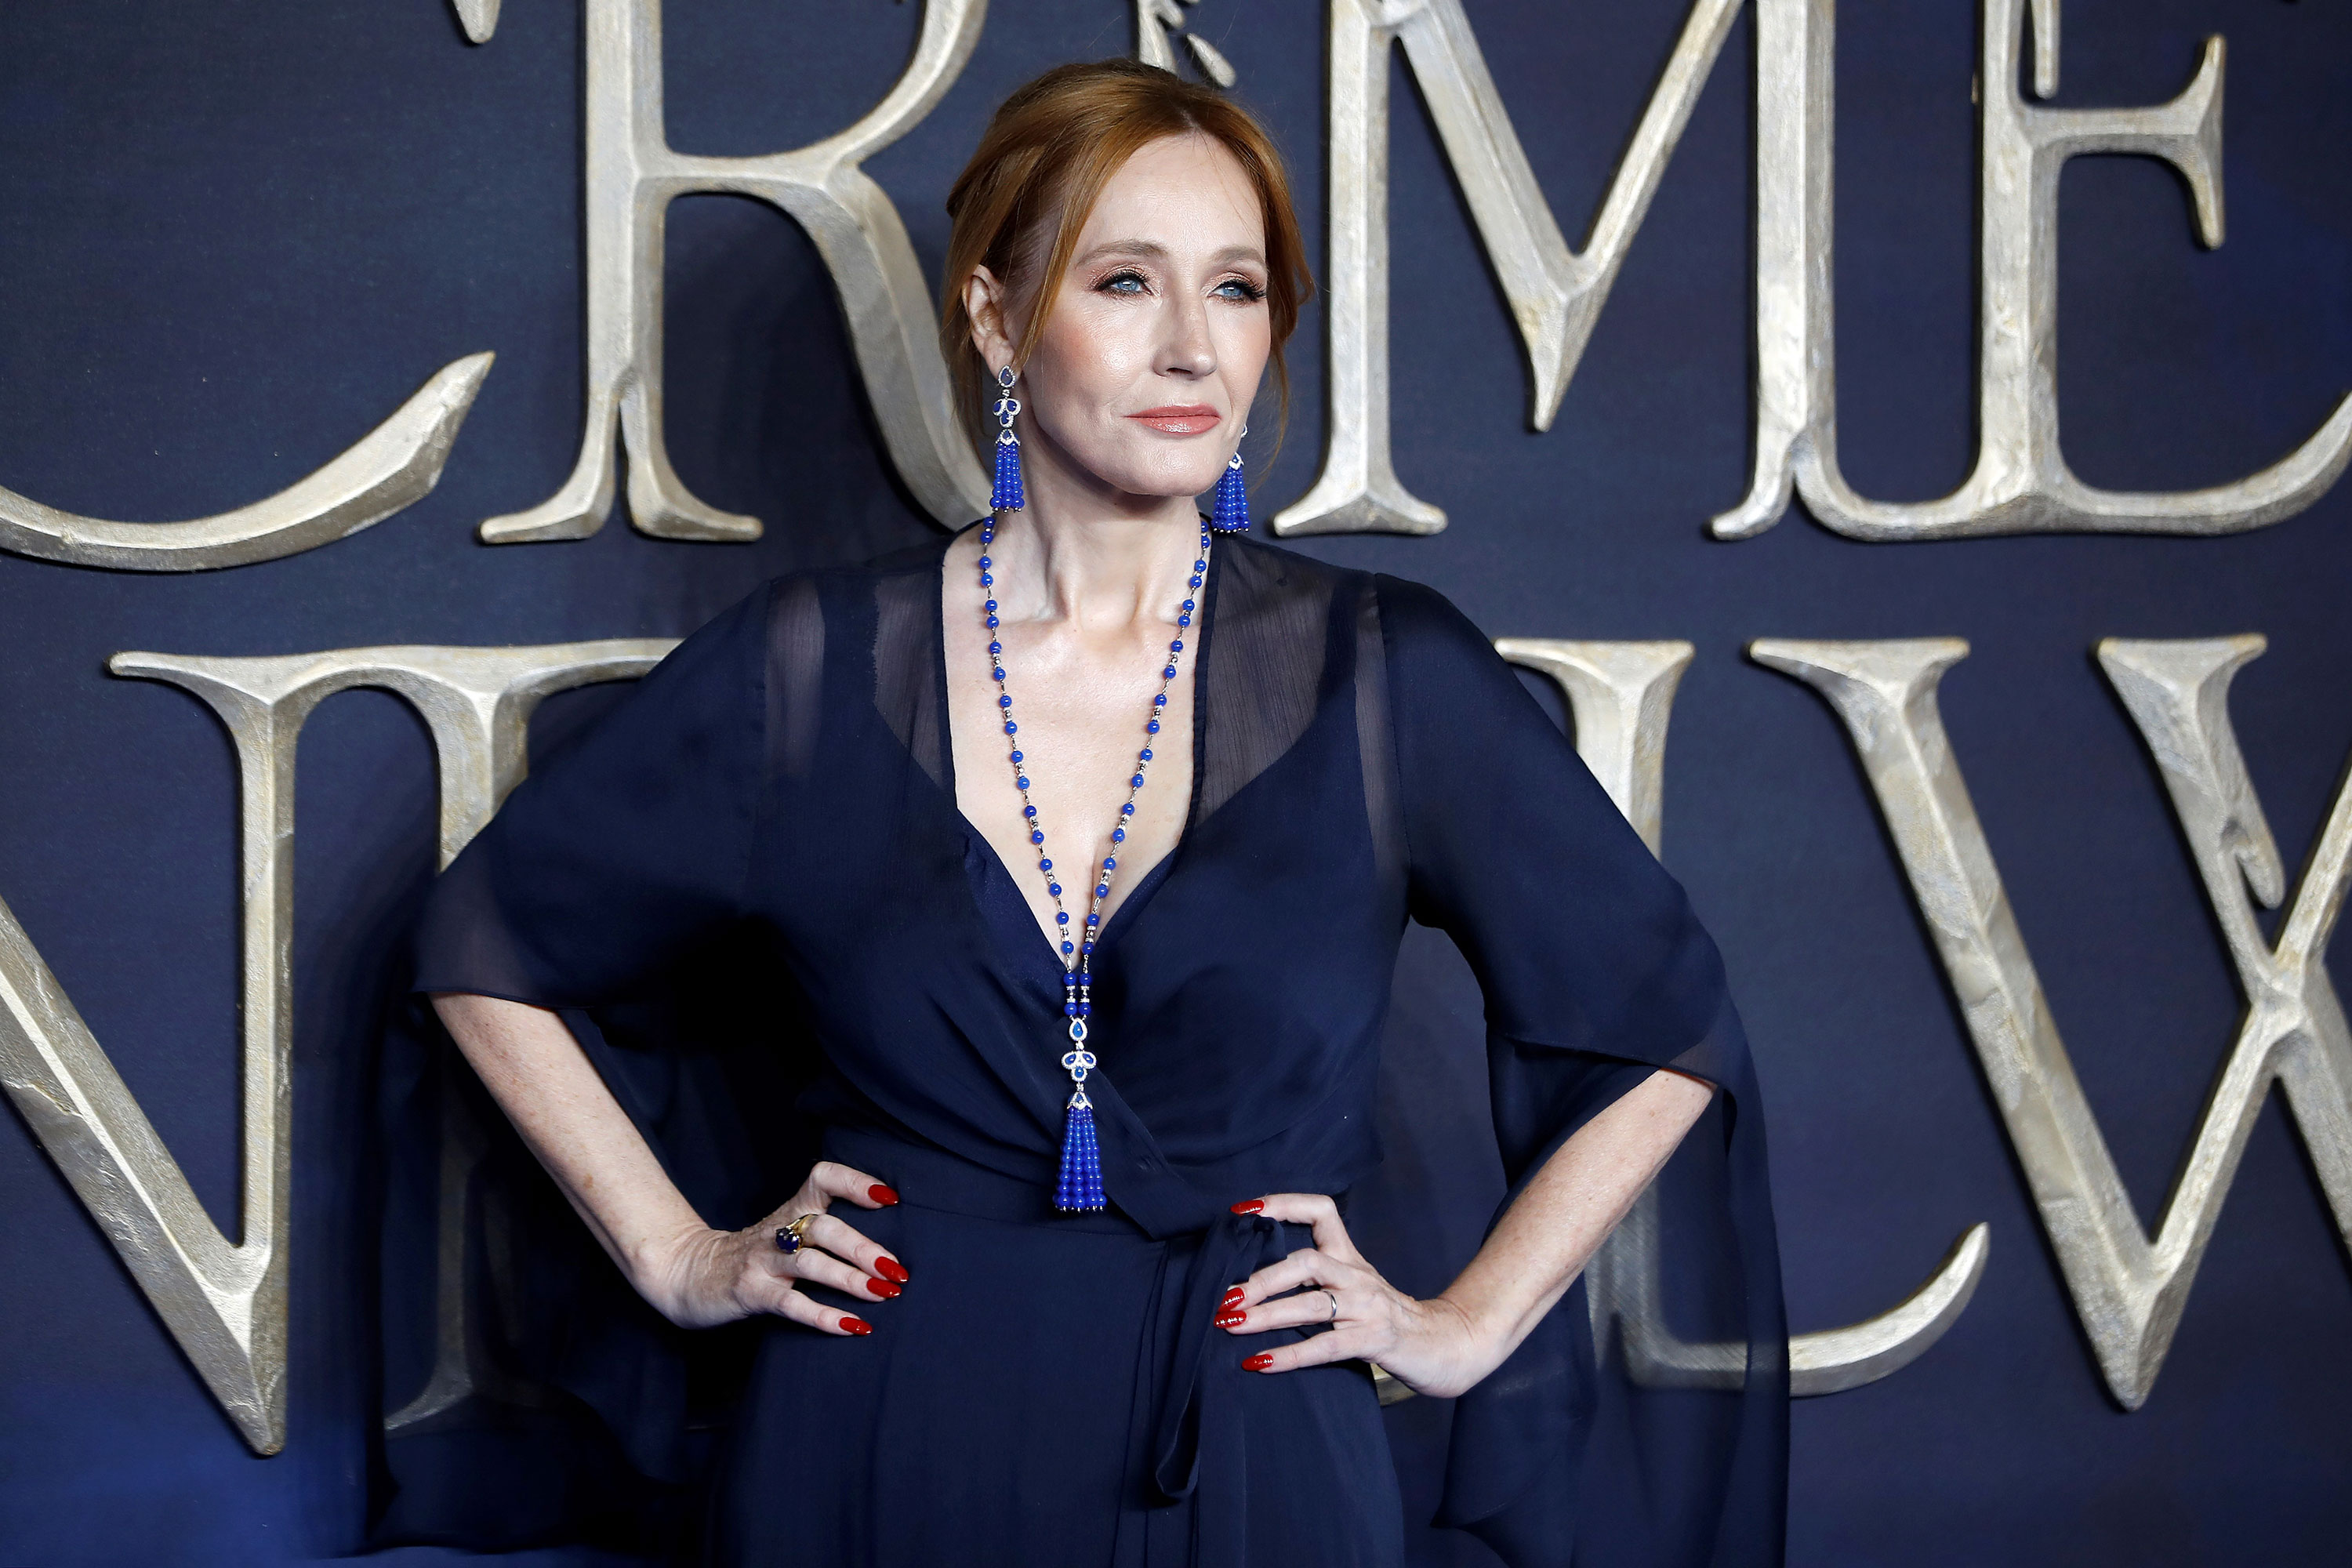 'Harry Potter' fan sites distance themselves from J.K. Rowling over gender identity comments